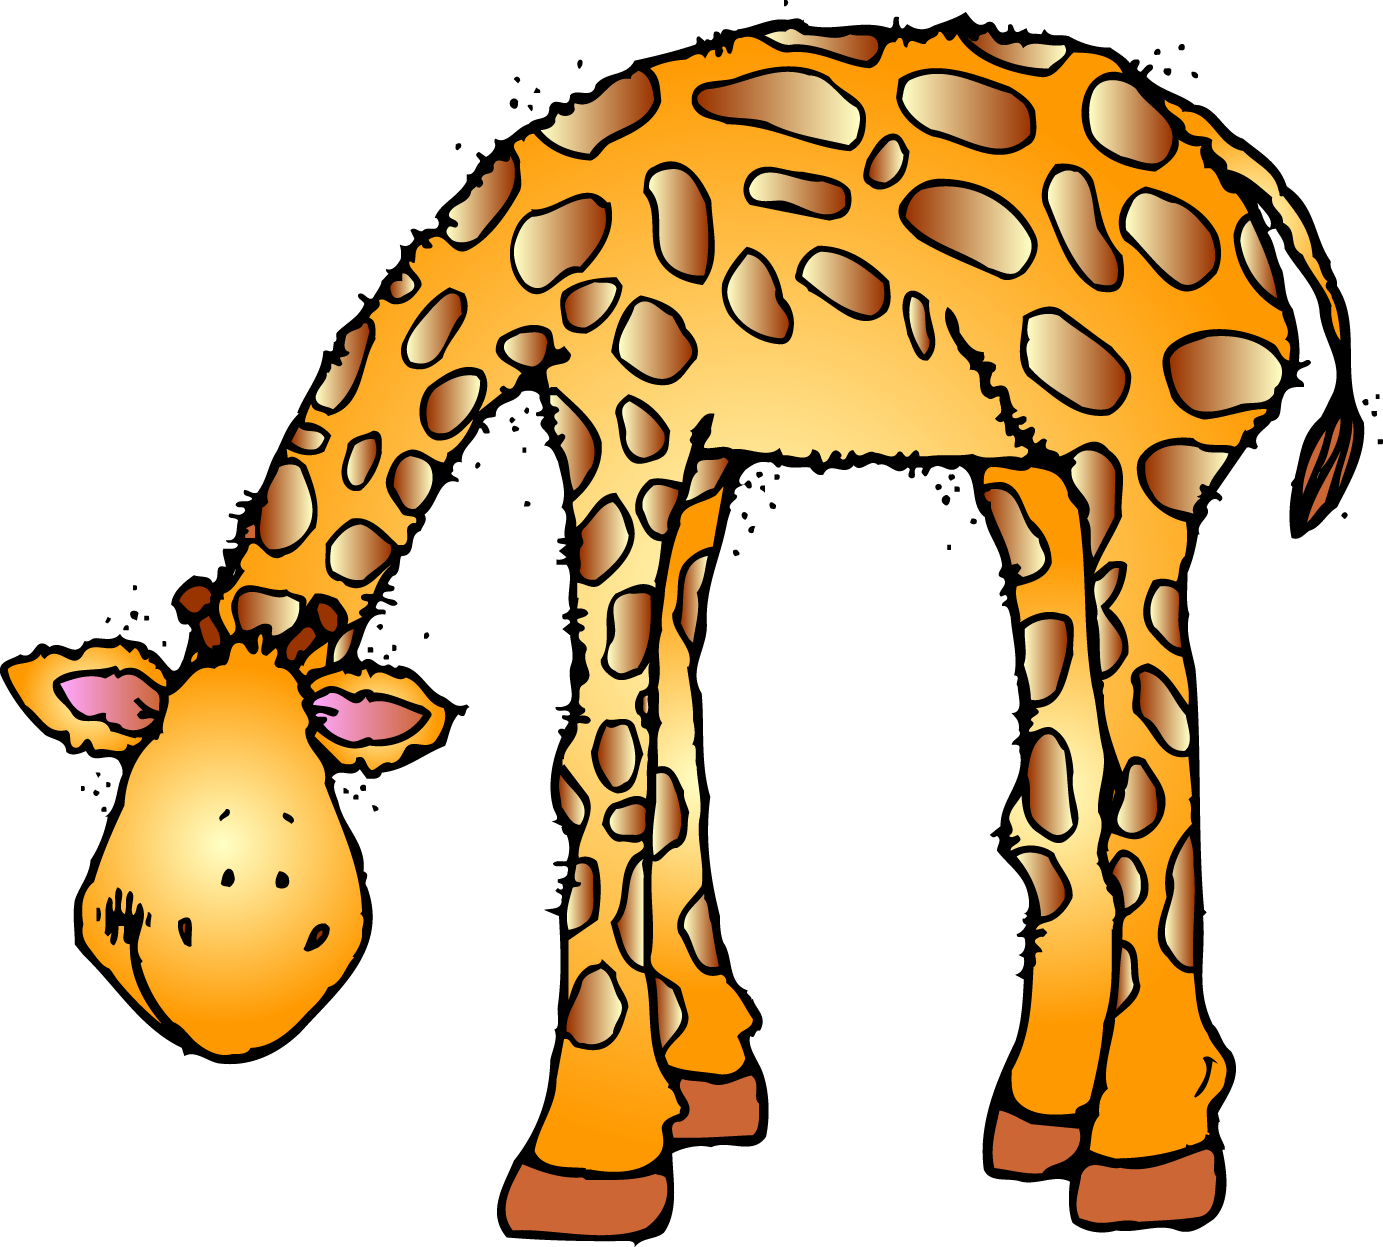 Zoo animals clipart free - Free PNG Zoo Animals